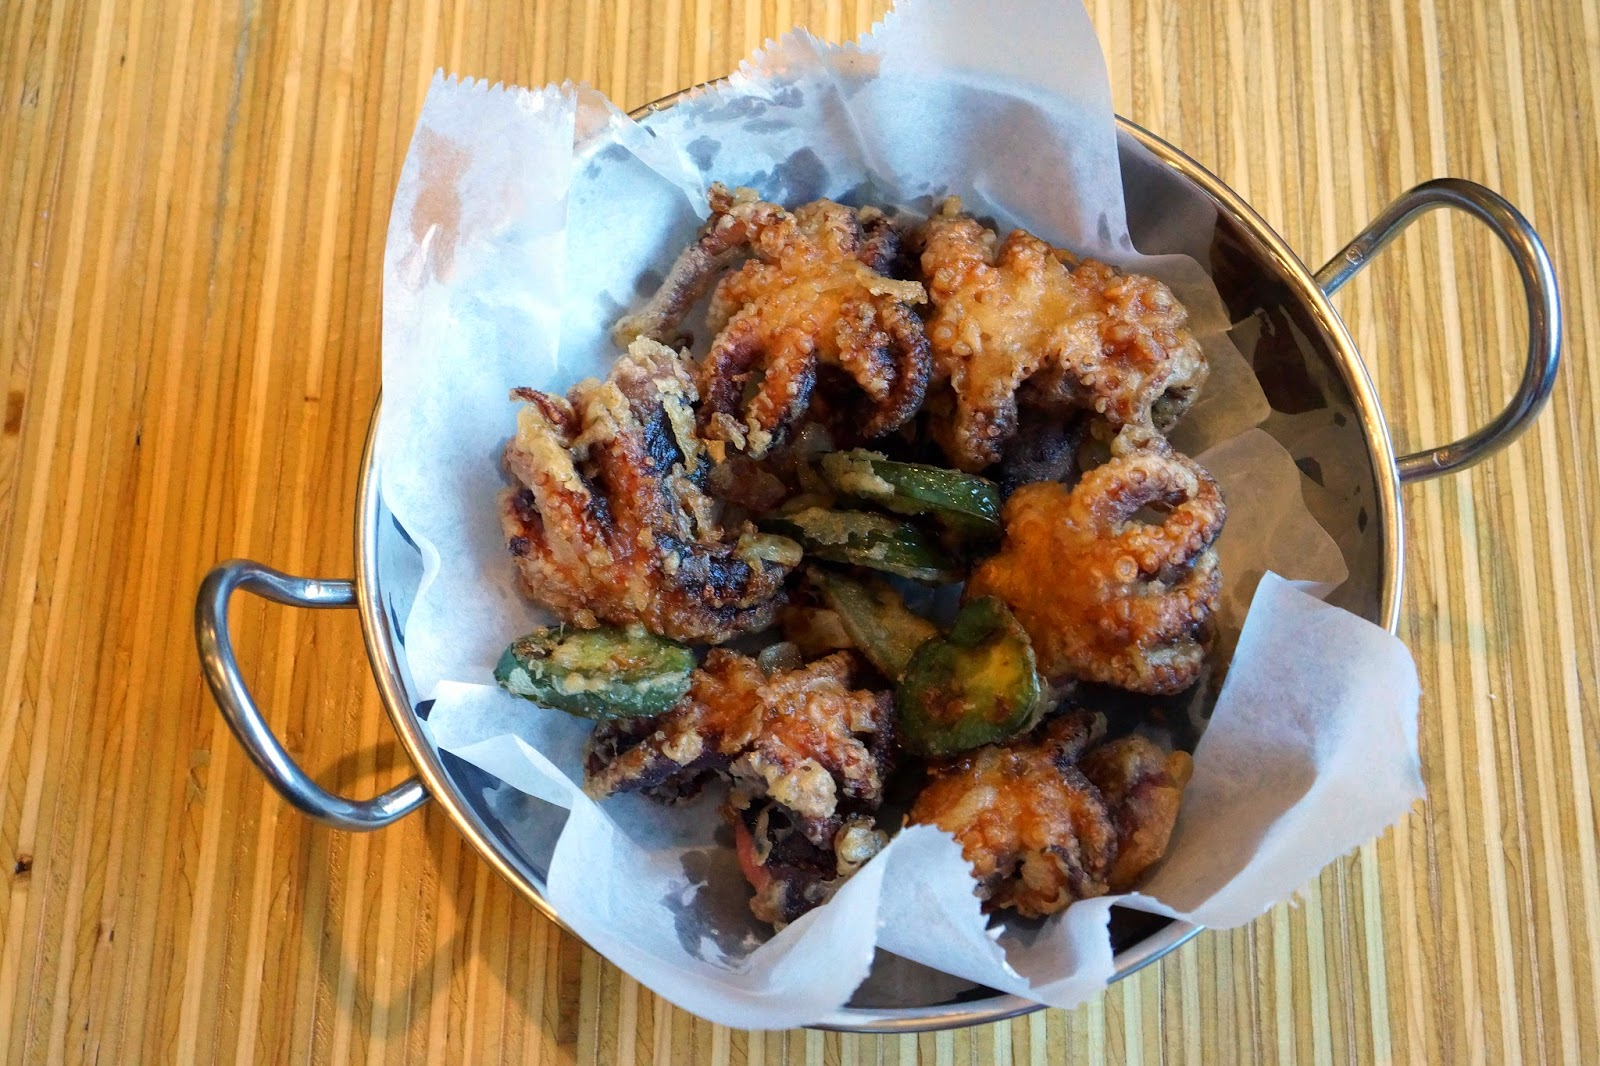 Sushi In The Atx Jenna S Asian Kitchen Launches Happy Hour